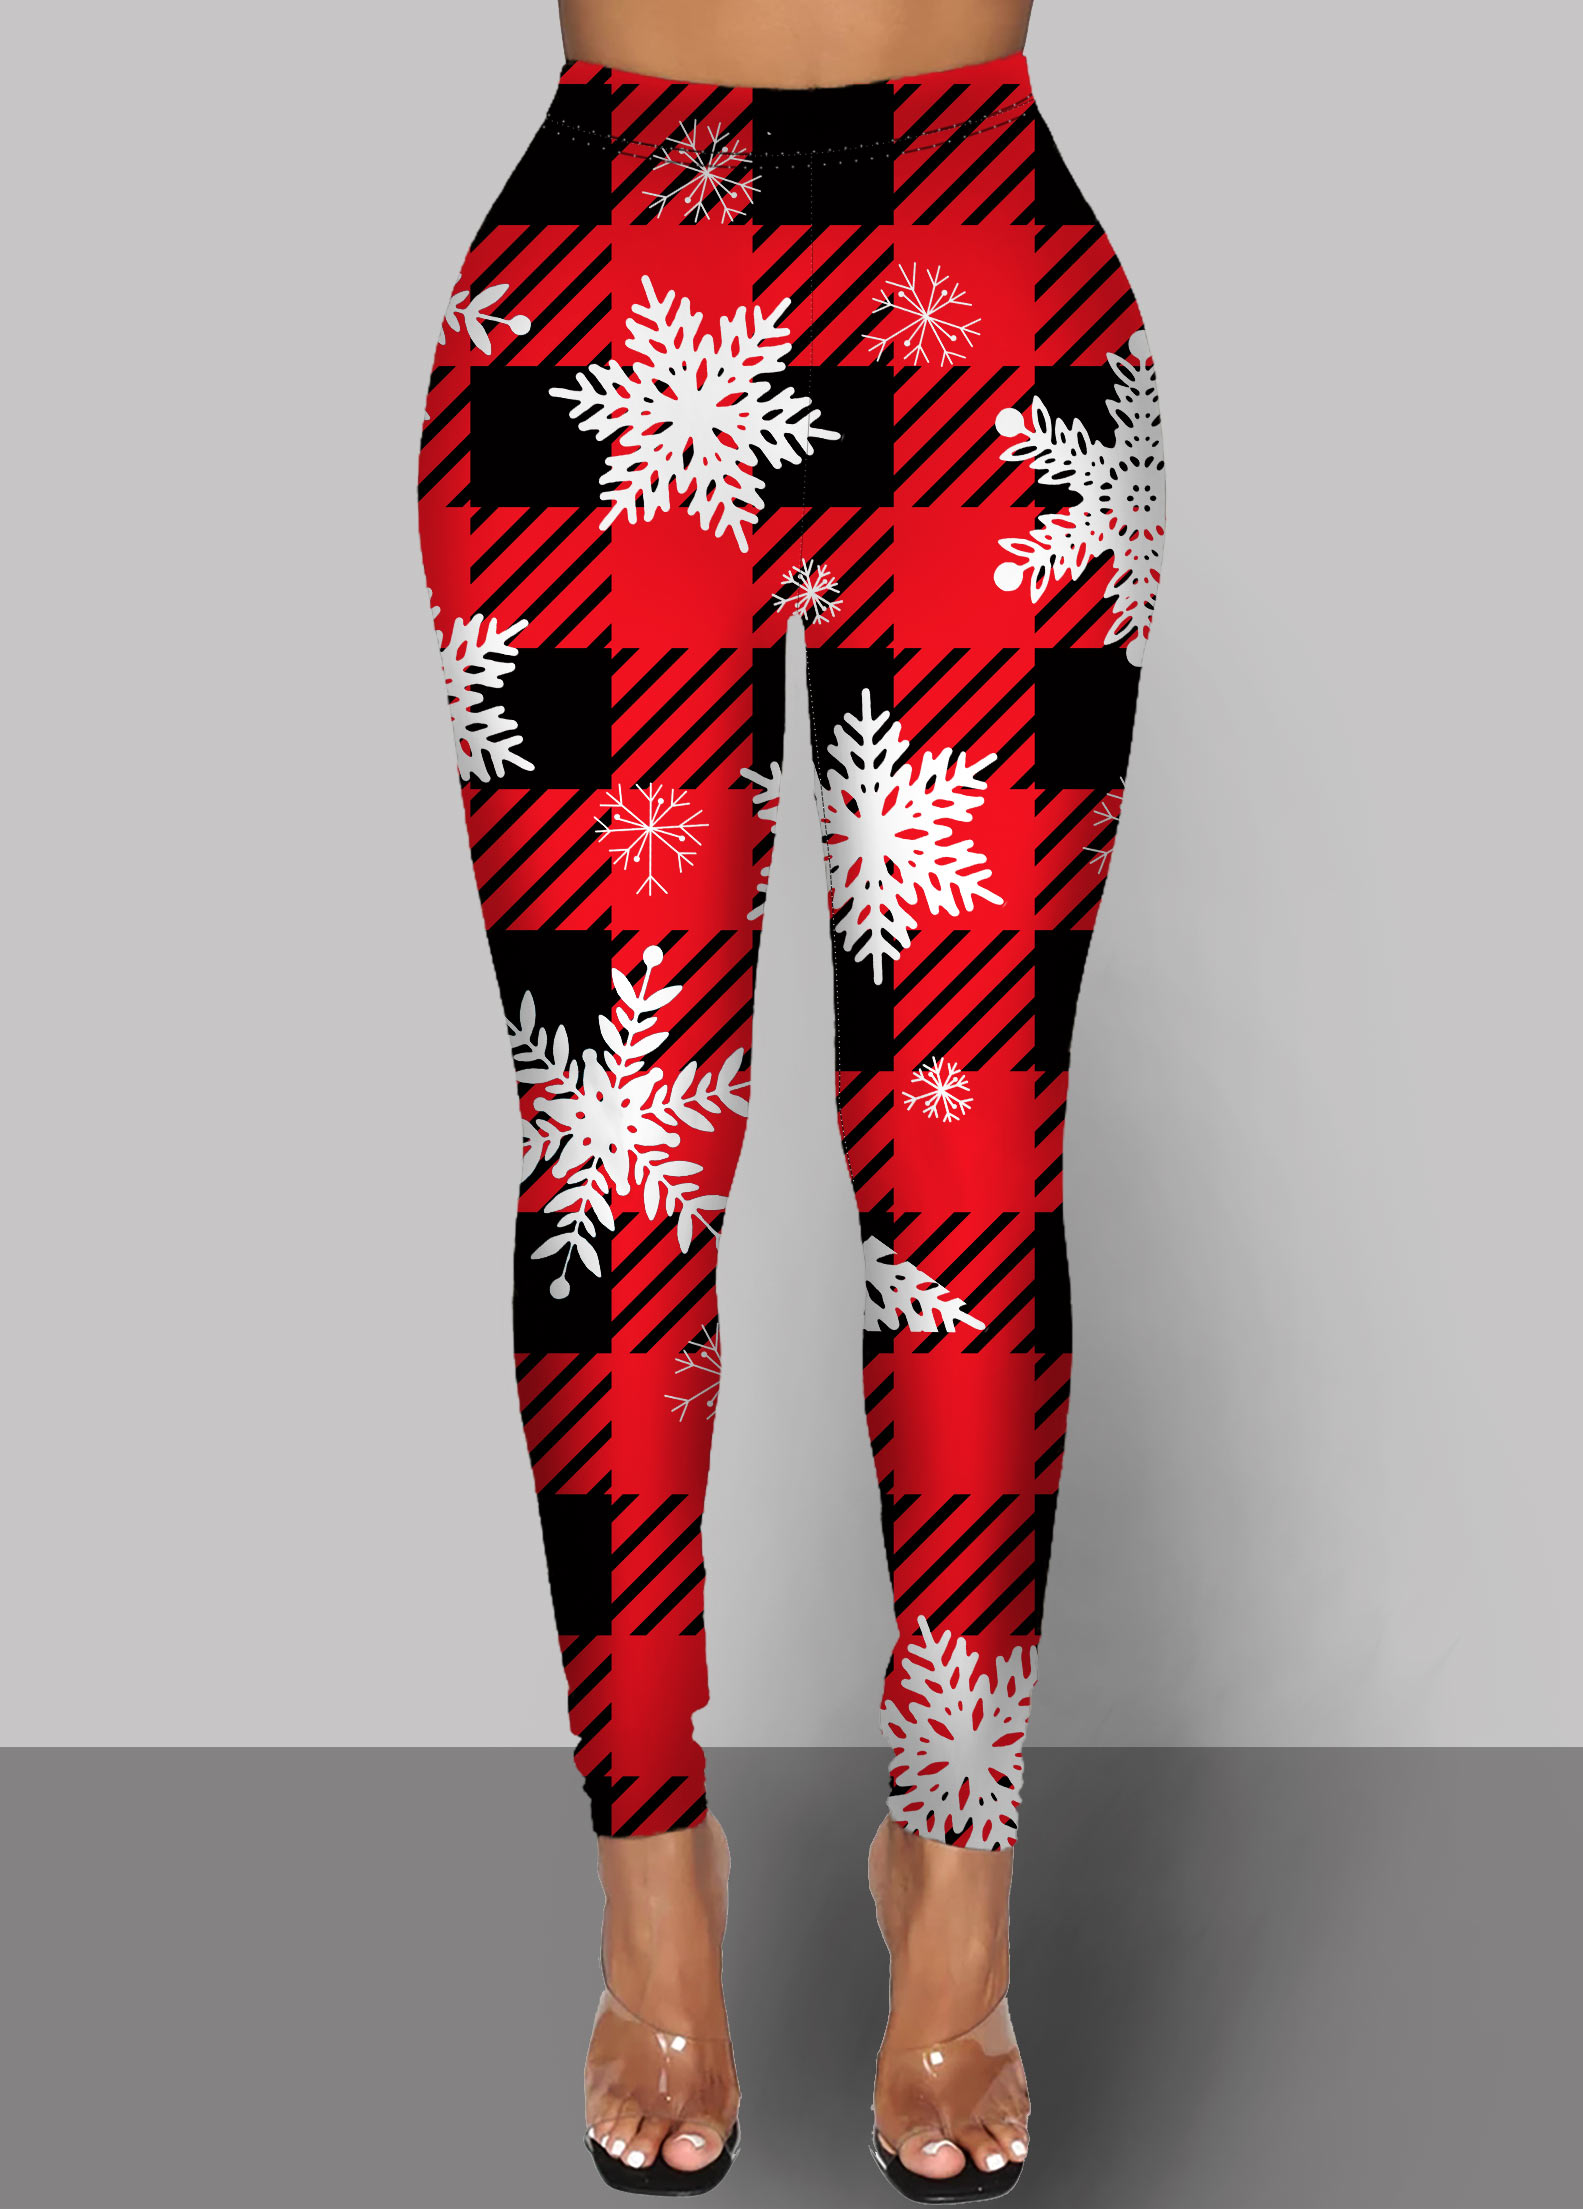 ROTITA High Waist Snowflake Print Red Pants